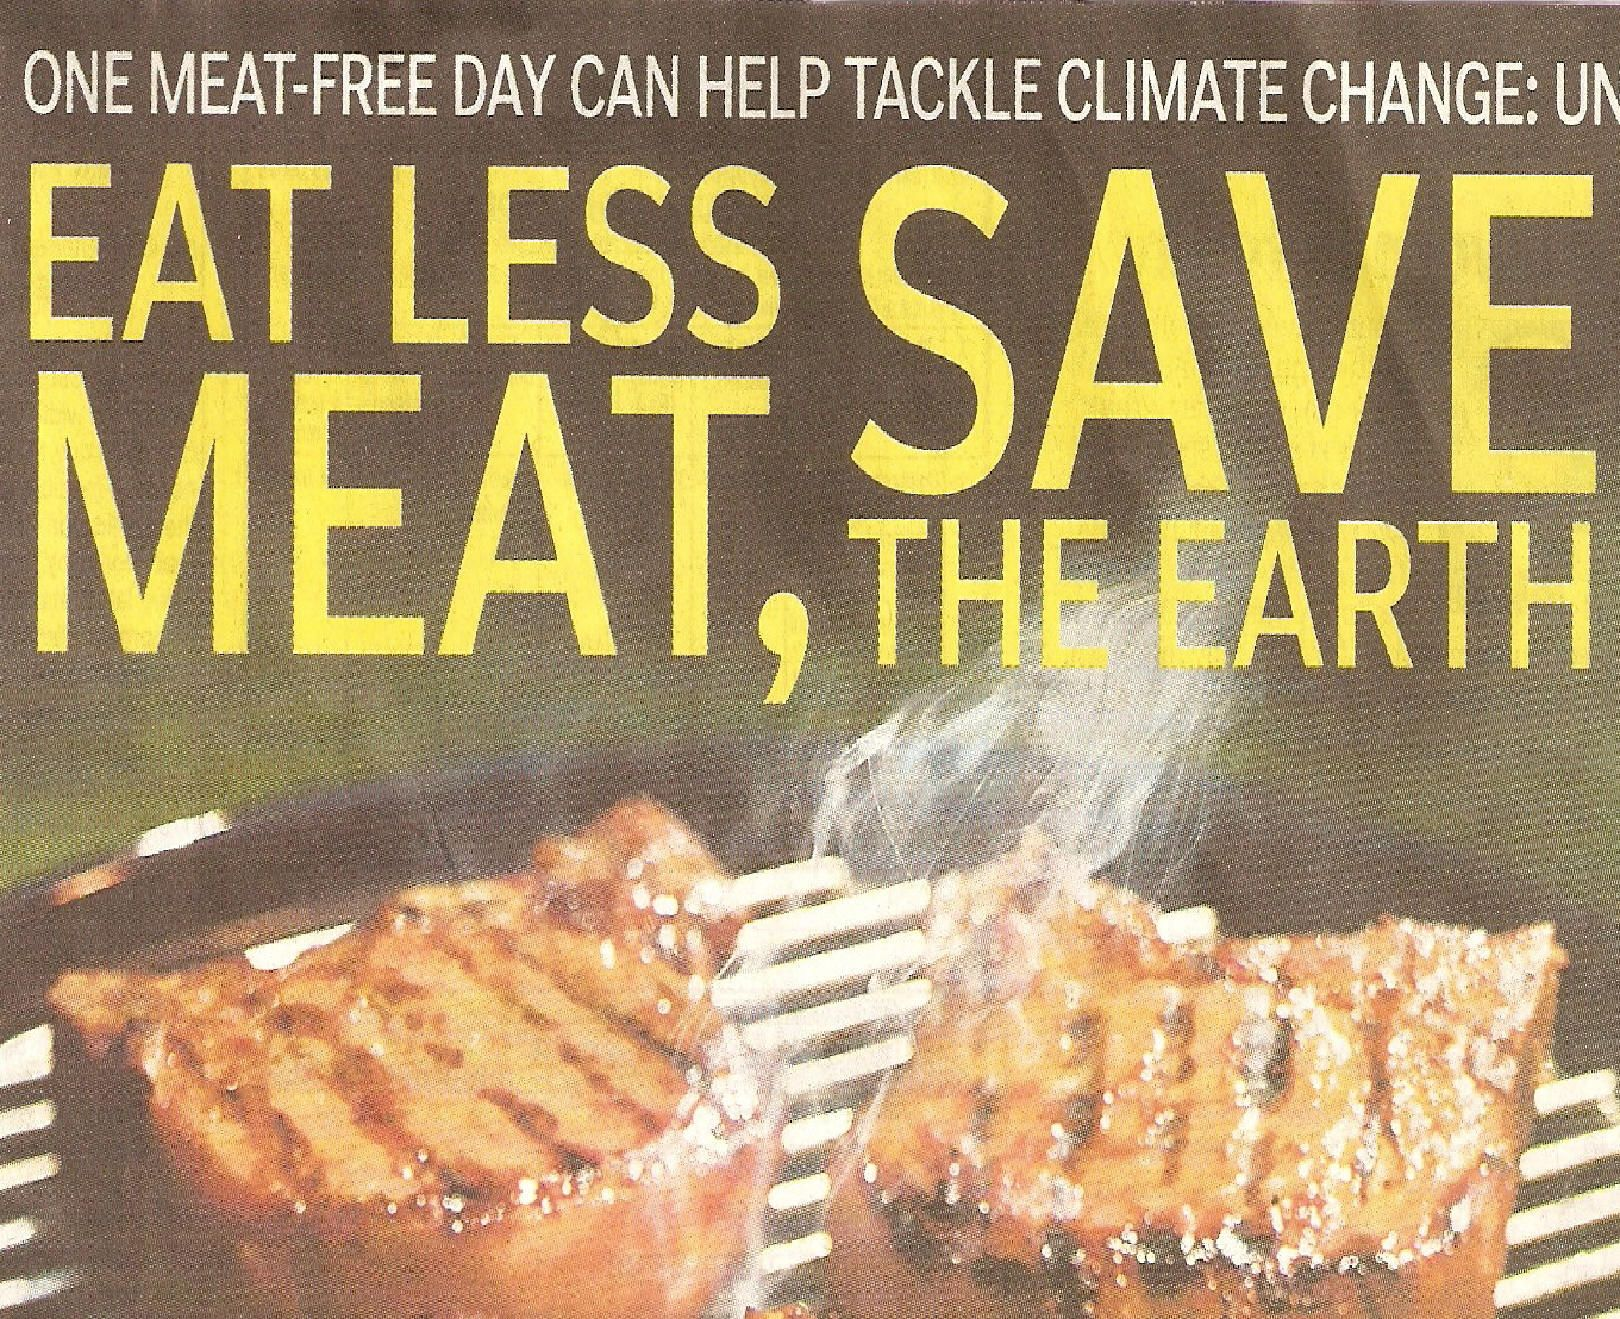 Eating less meat and junk food could cut fossil energy fuel use